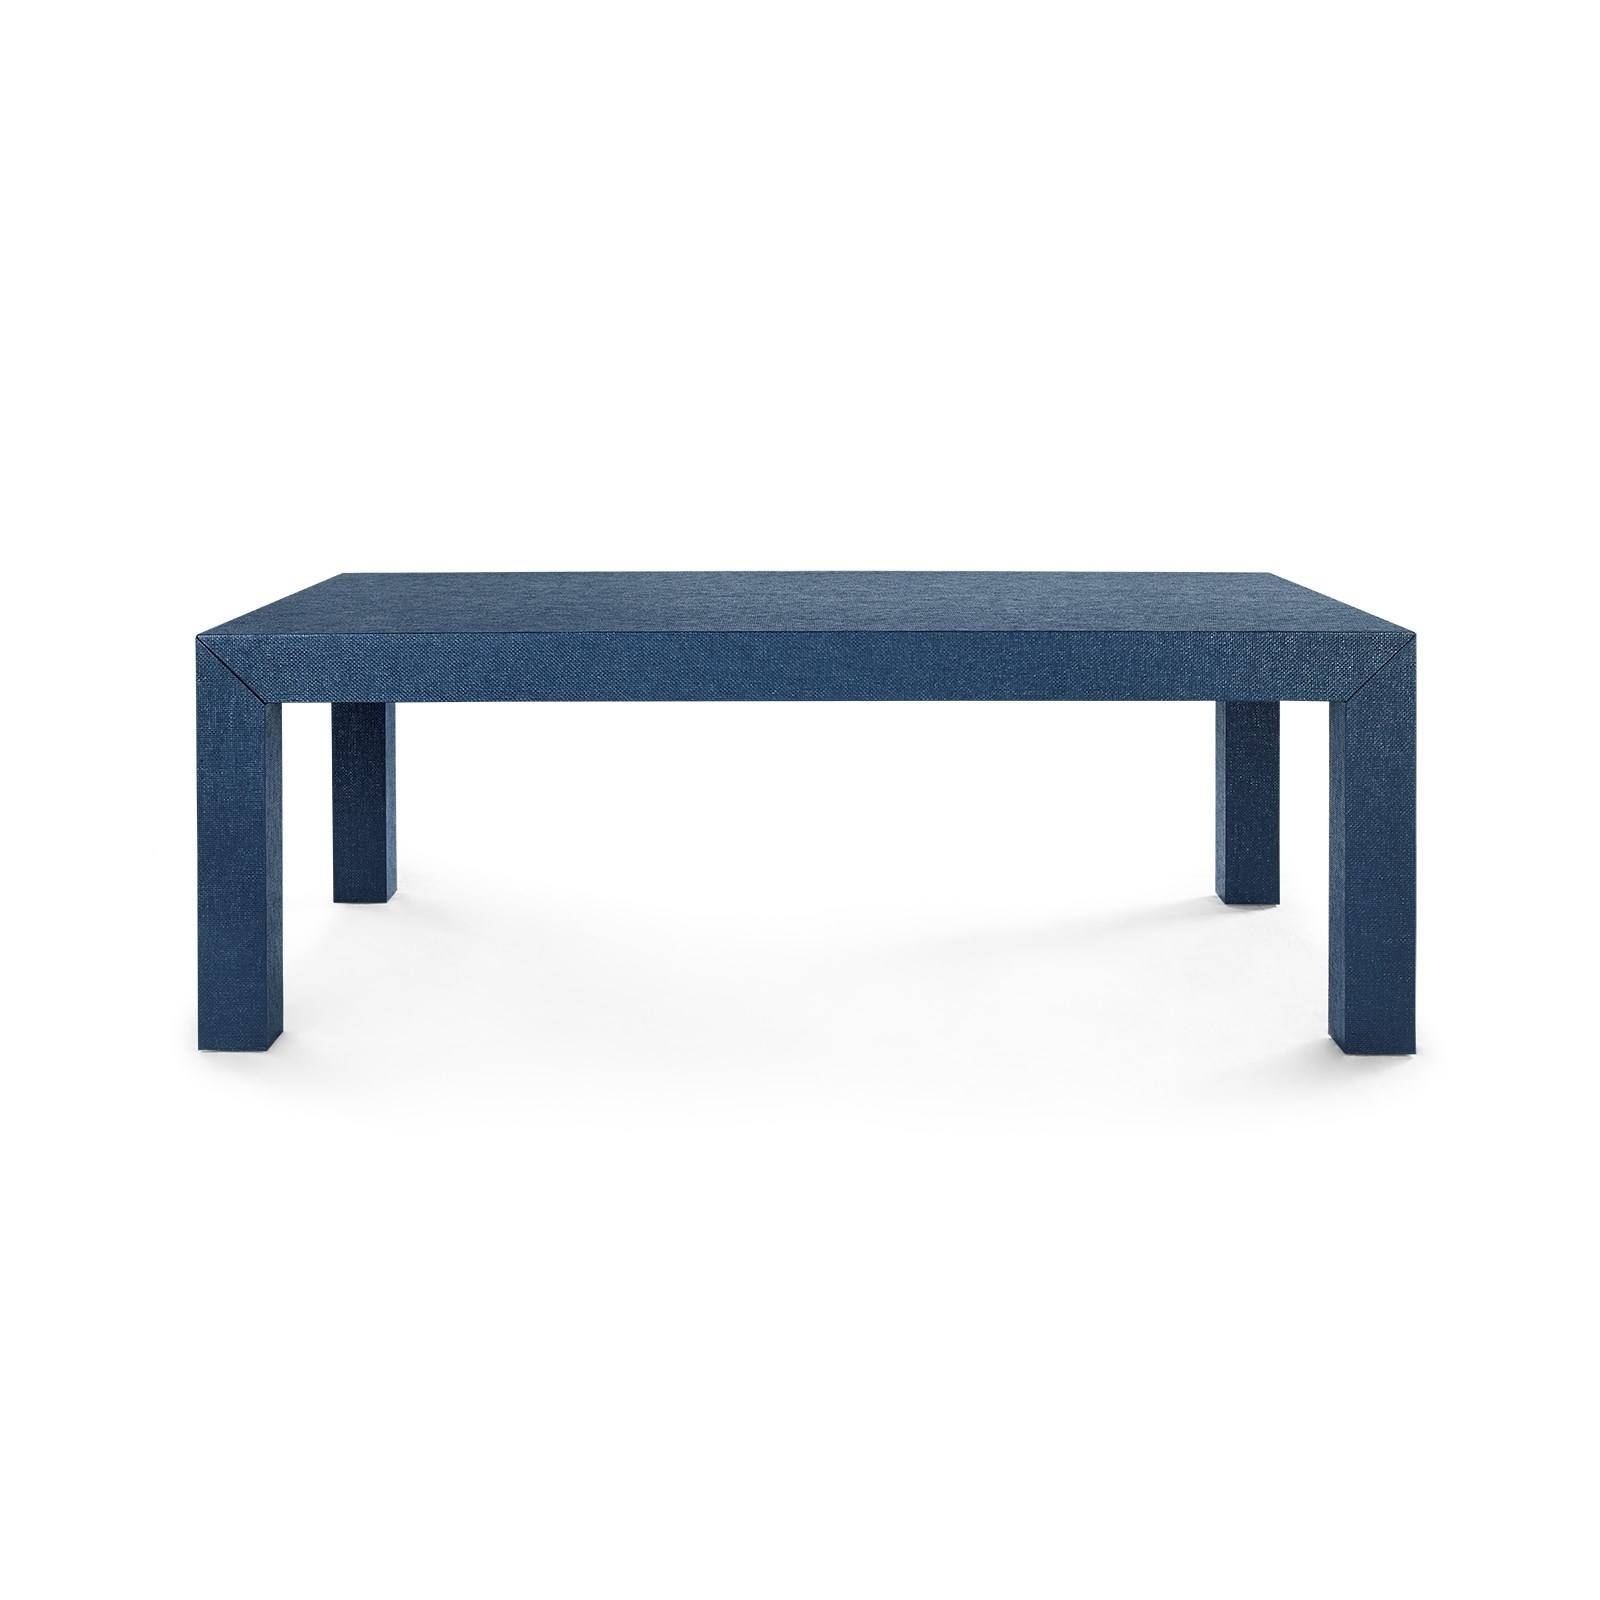 Parsons Coffee Table., Navy Blue - Bungalow 5 throughout Blue Coffee Tables (Image 28 of 30)